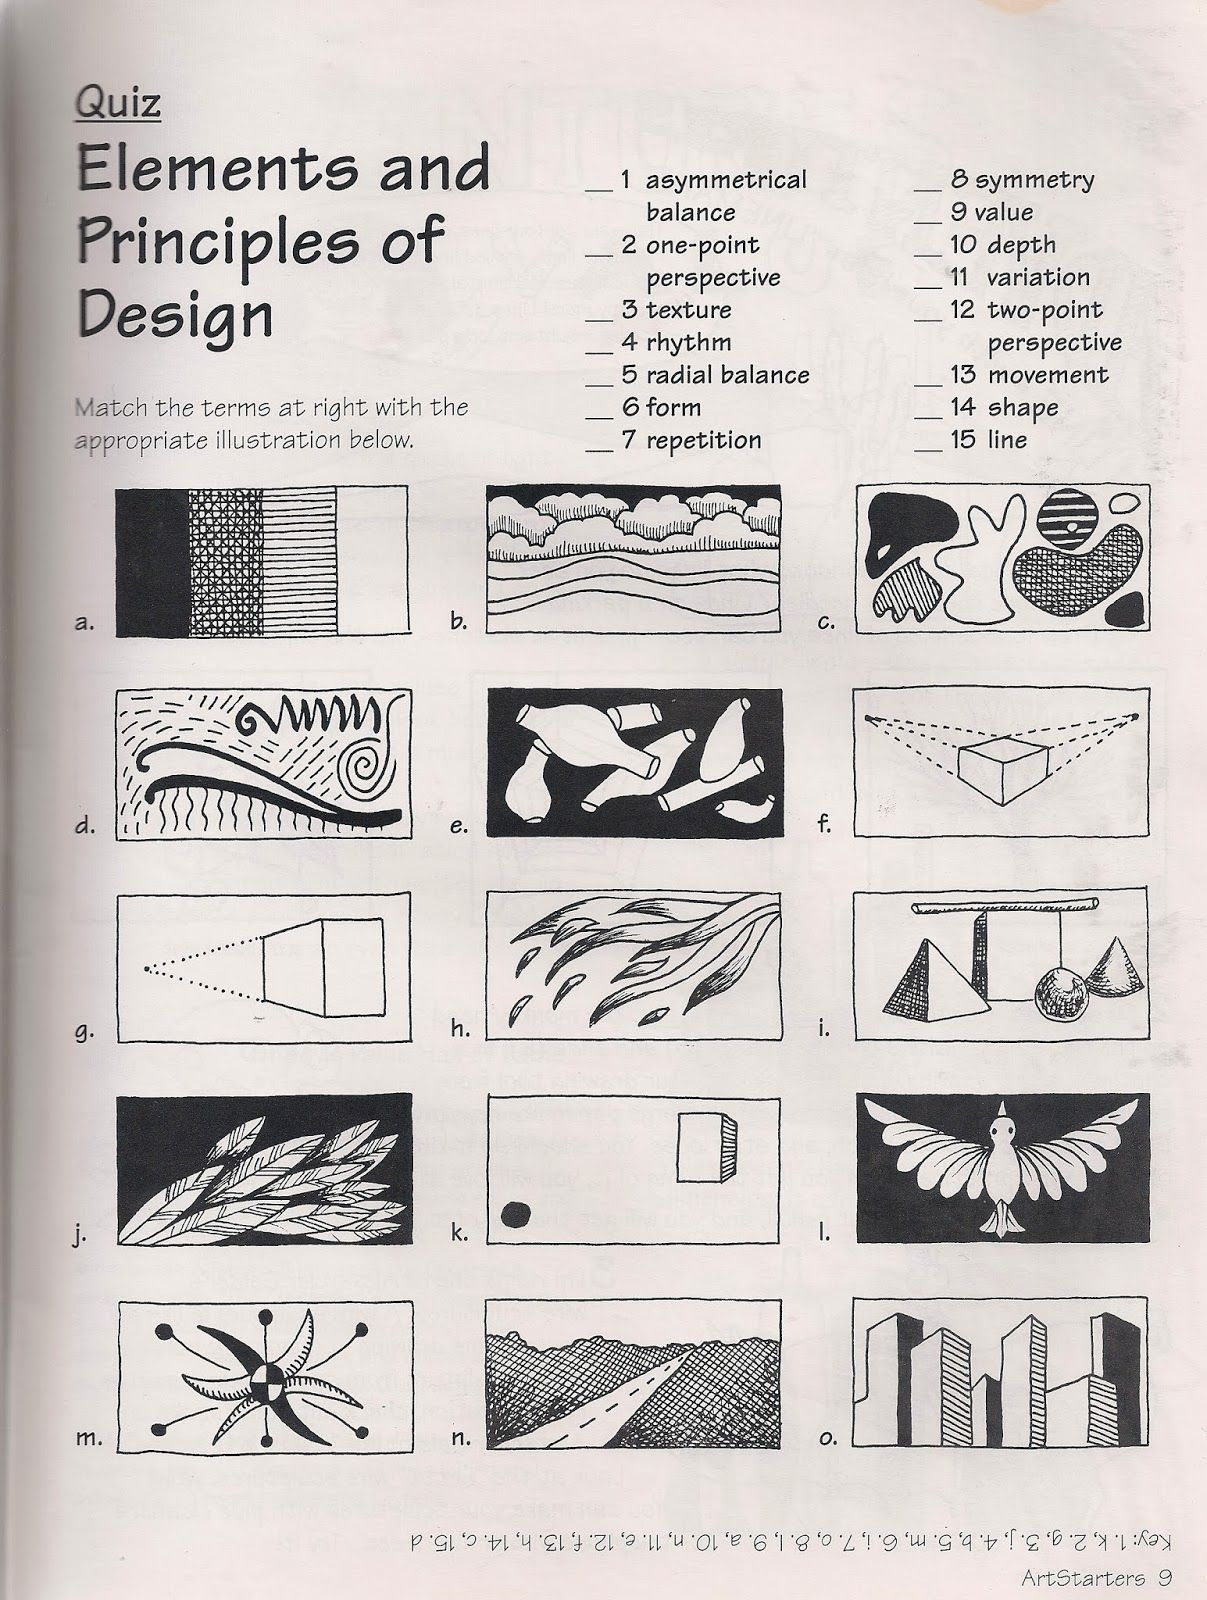 Worksheets Elements And Principles Of Art Worksheet no corner suns the elements and principles of art free quiz download http